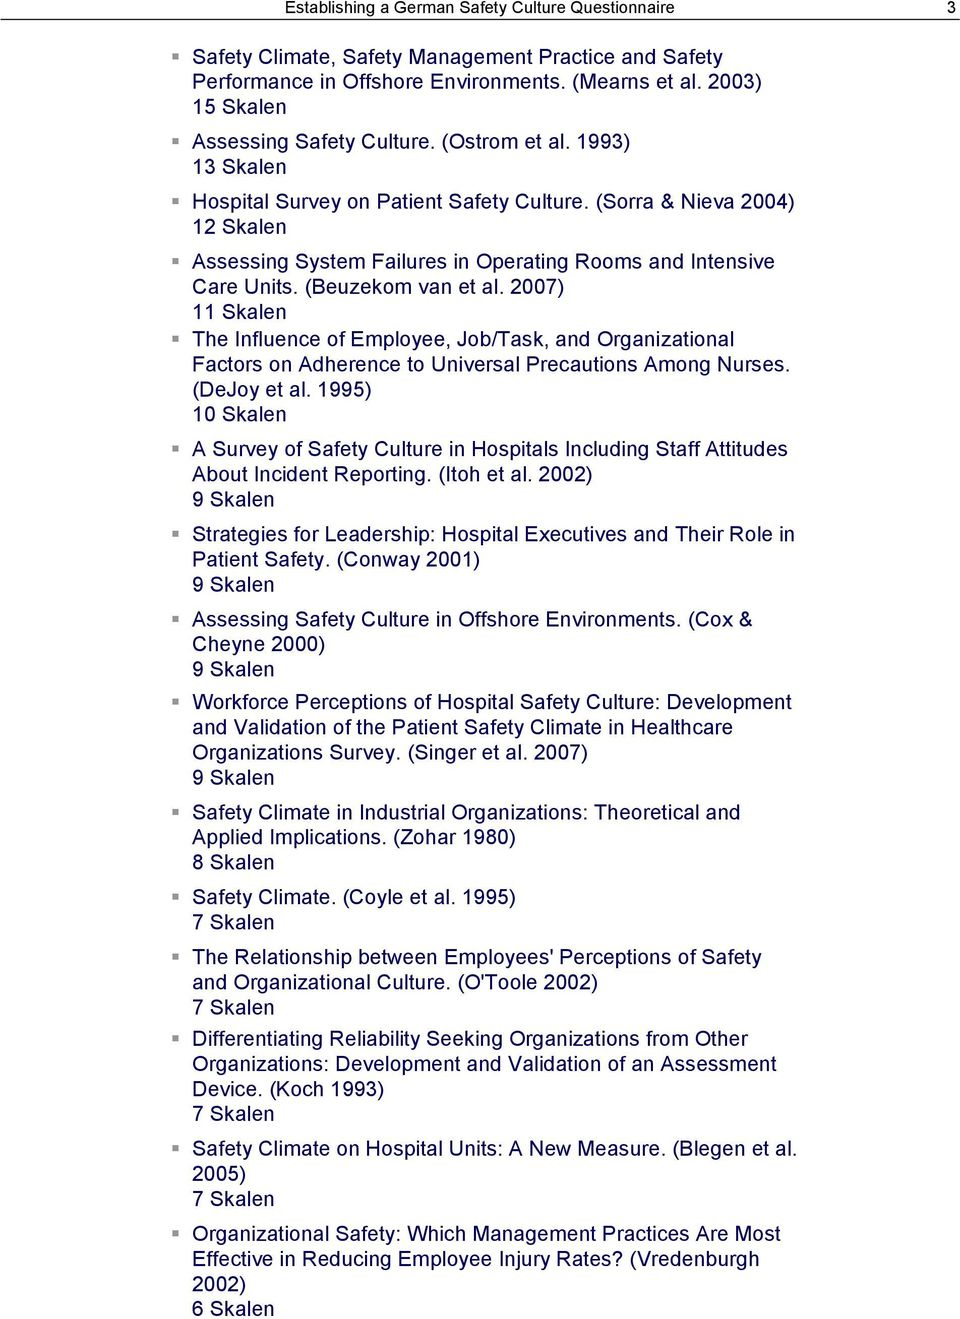 007) Skalen The Influence of Employee, Job/Task, and Organizational Factors on Adherence to Universal Precautions Among Nurses. (DeJoy et al.